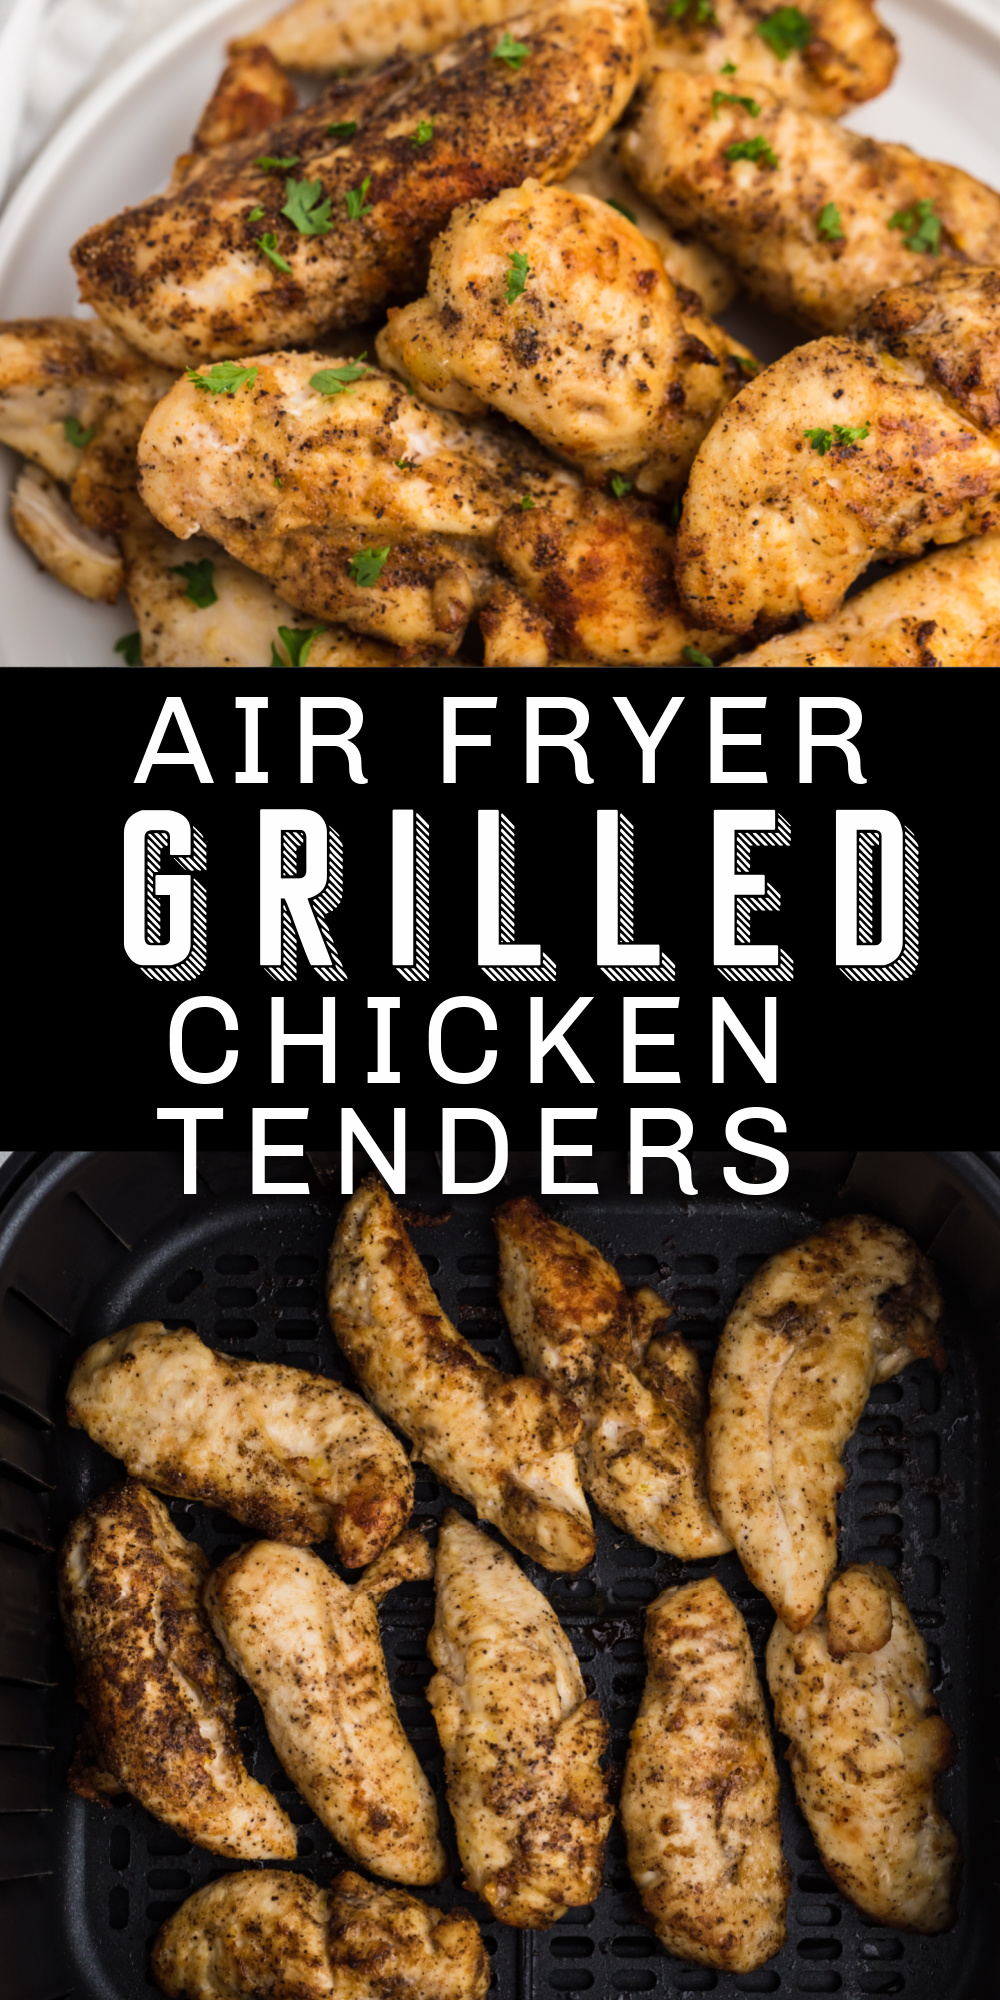 Air Fryer Grilled Chicken Tenders are a family favorite at my house! These low carb chicken fingers are homemade, delicious, easy, and only take 10 minutes. All using staple ingredients you probably already have on hand. It's an easy air fryer recipe this whole family will love.